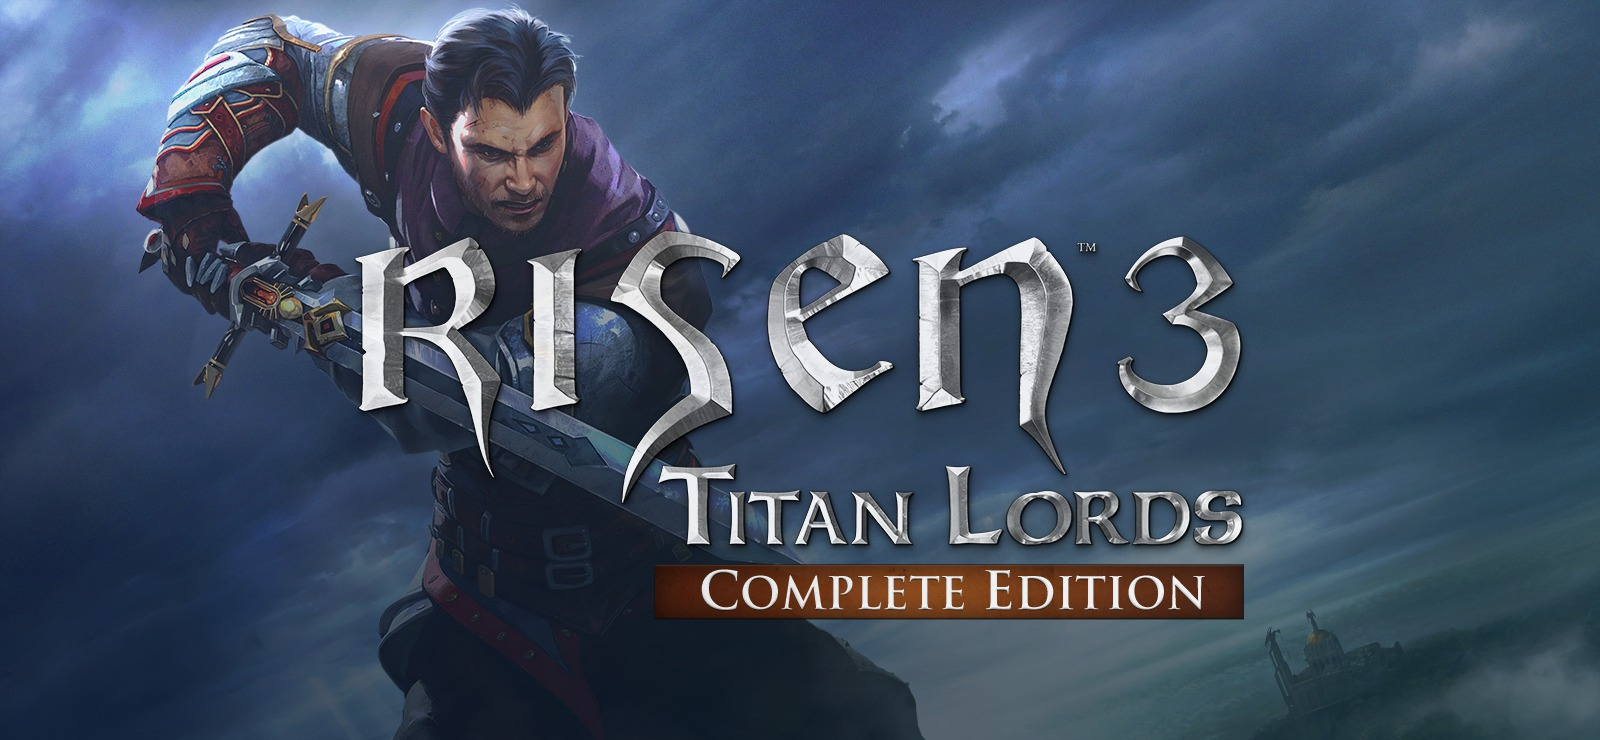 Risen 3 - Complete Edition (game+3 DLC)RU+CIS Steam key